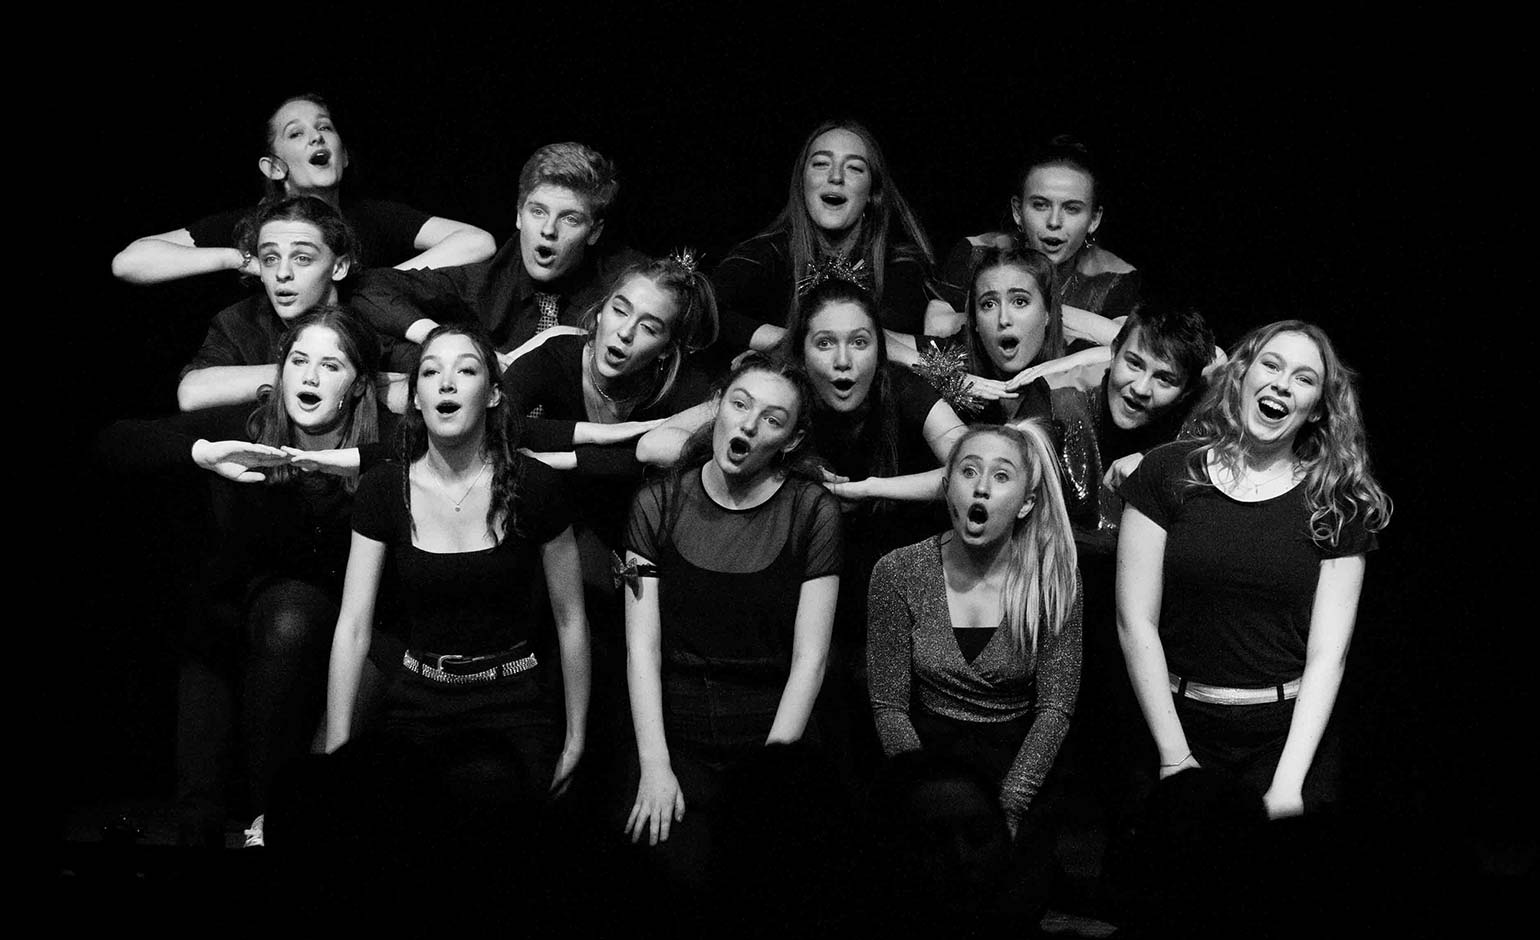 Musical showcase raises over £6,000 for school PTFA and performing arts